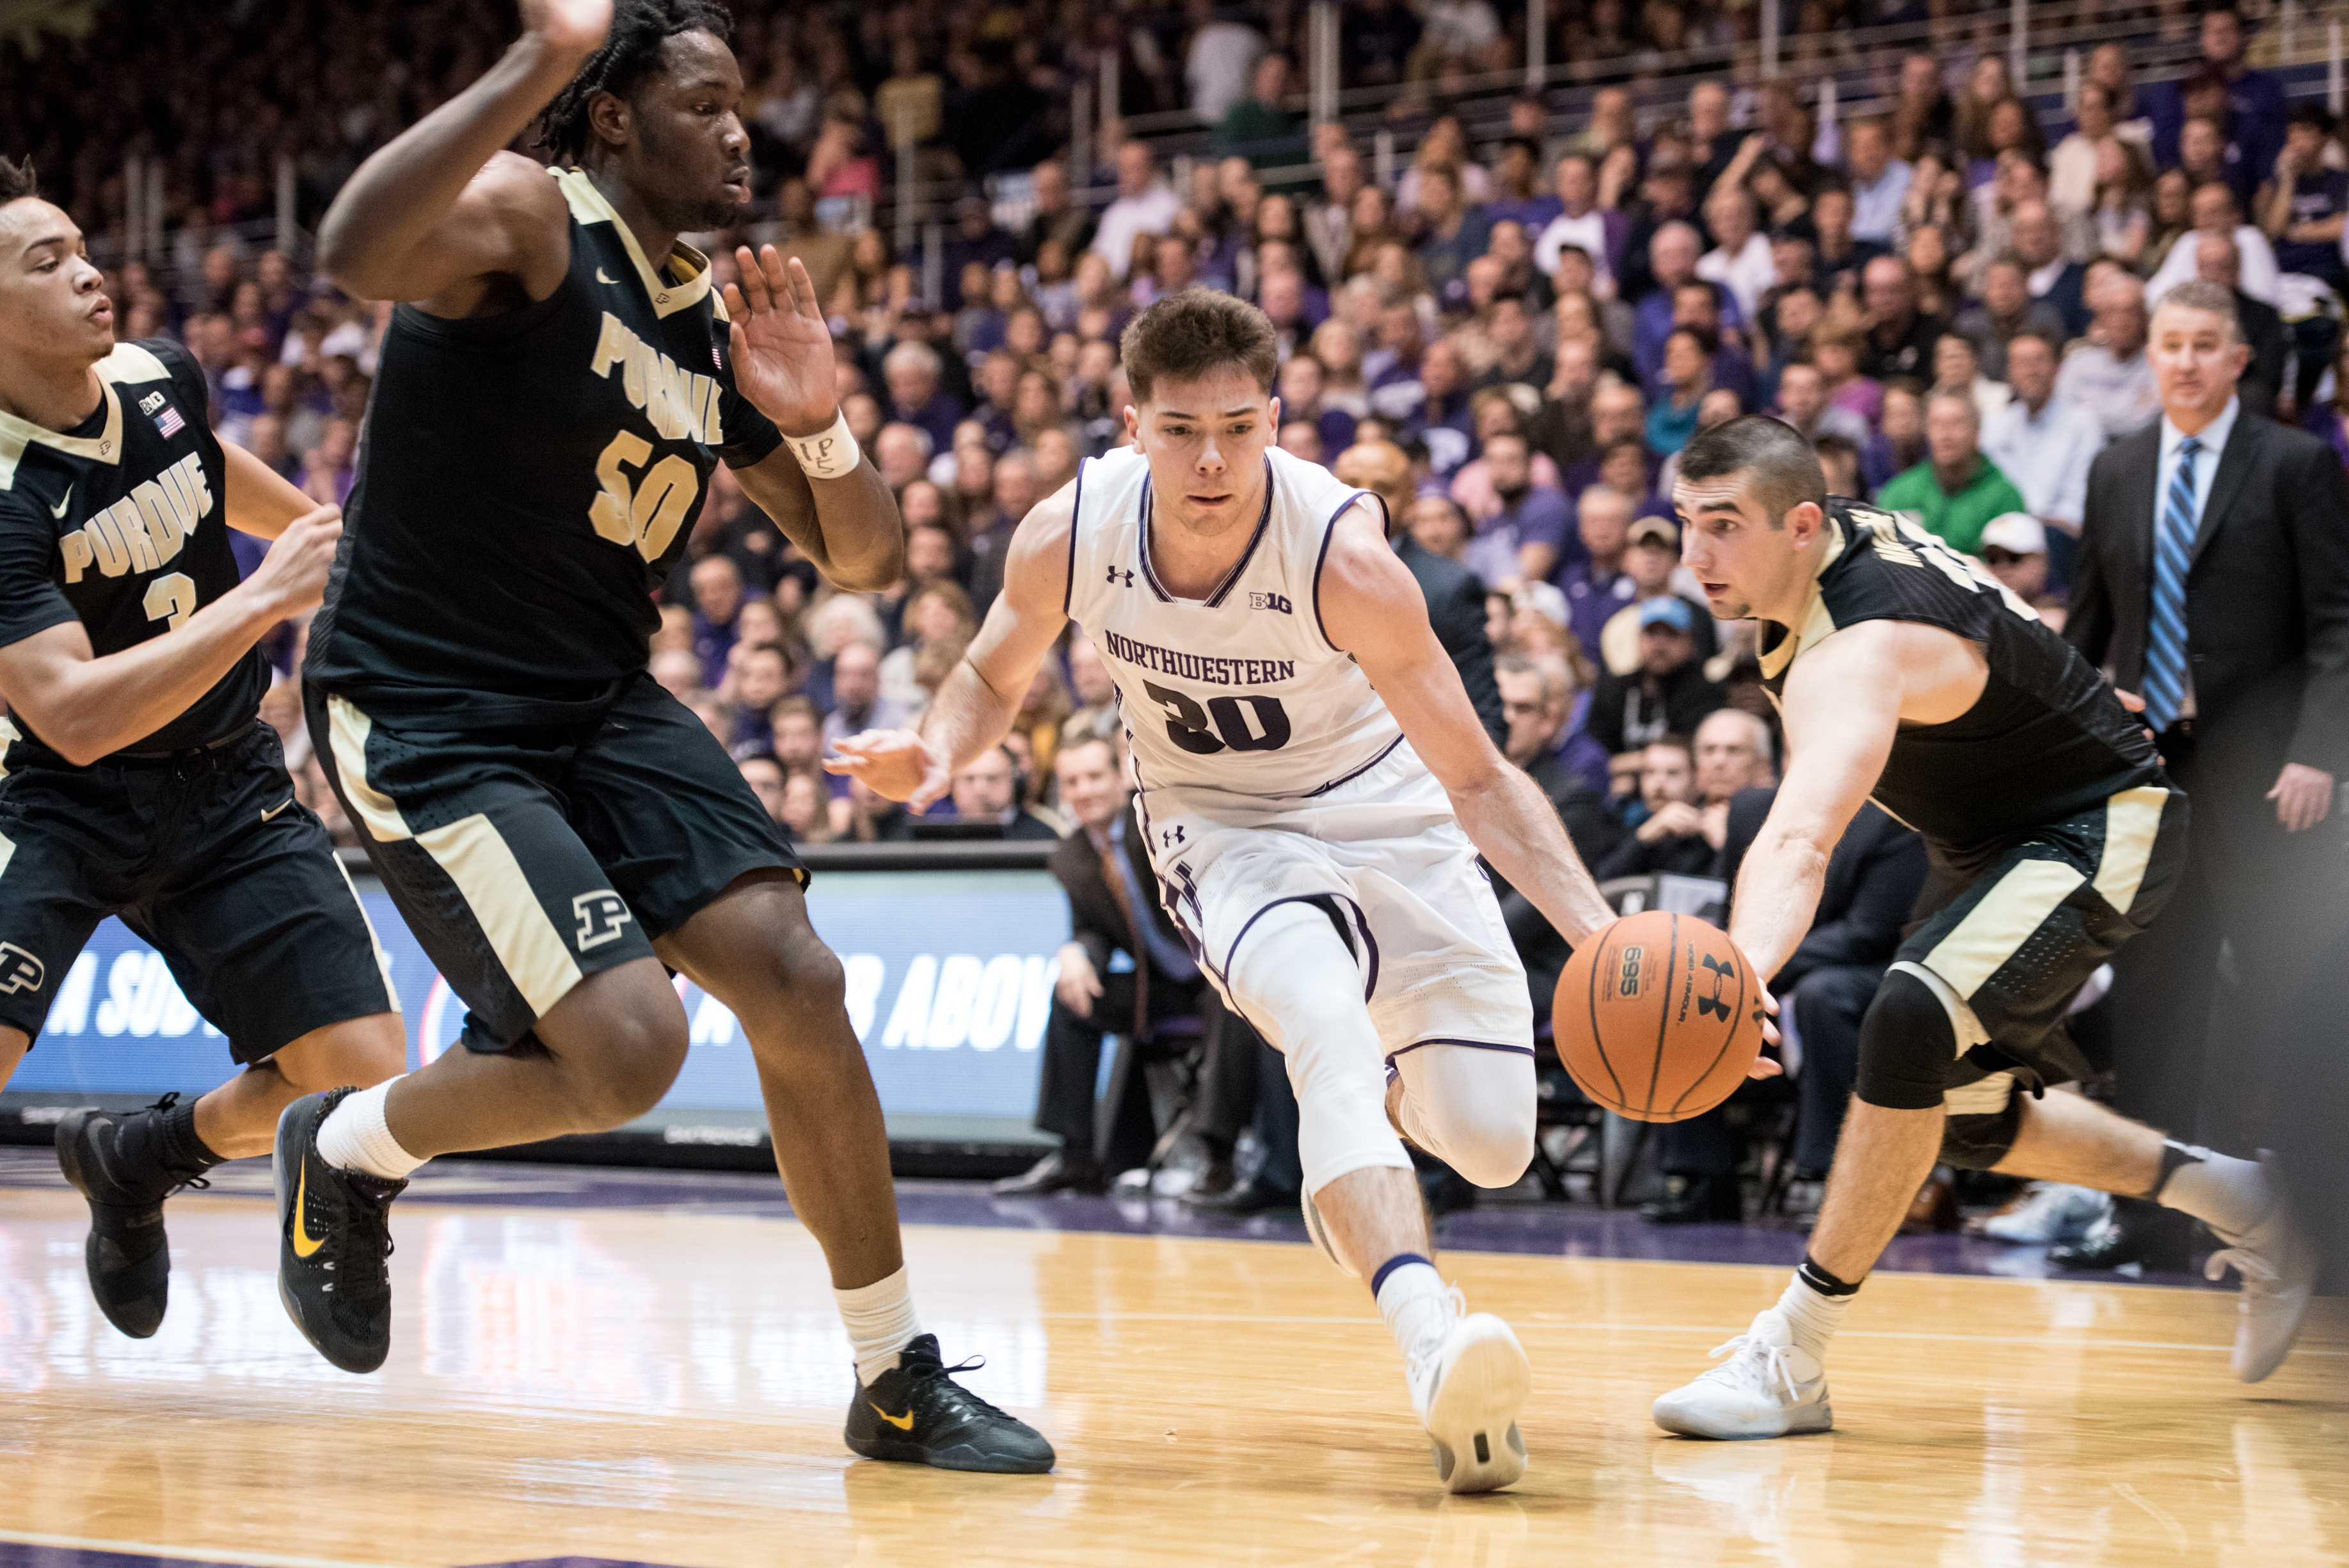 Northwestern's Bryant McIntosh drives to the basket against Purdue on March 5, 2017. (Colin Boyle/Daily Northwestern)